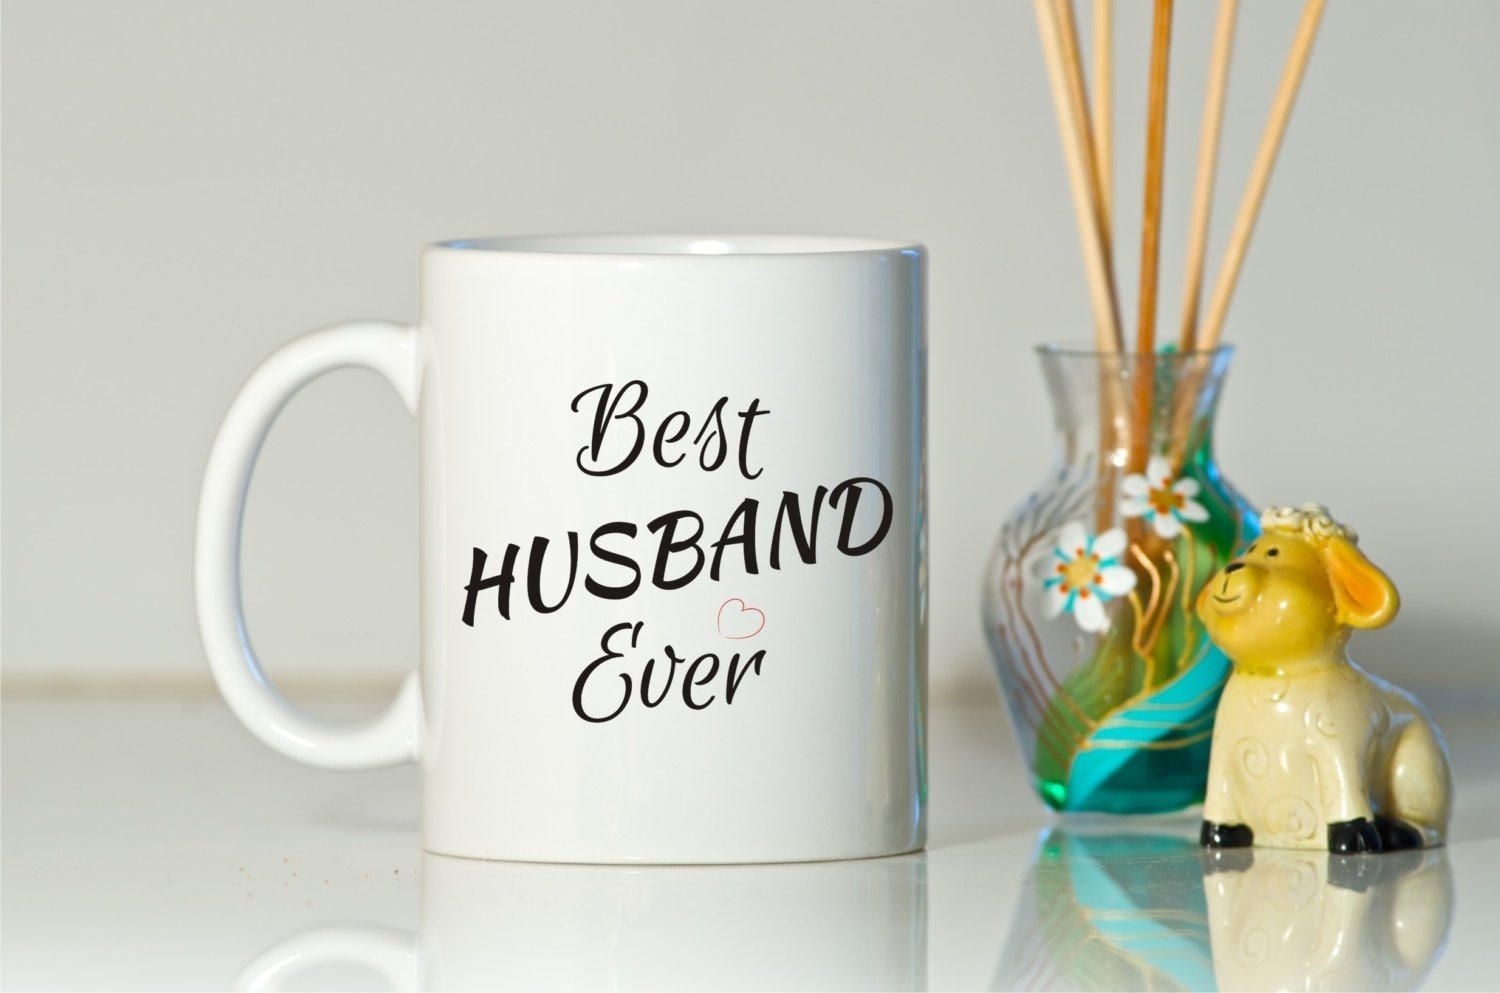 10 Nice Birthday Gift Idea For Wife first birthday gift for husband wife after wedding marriage anniversary 8 2021